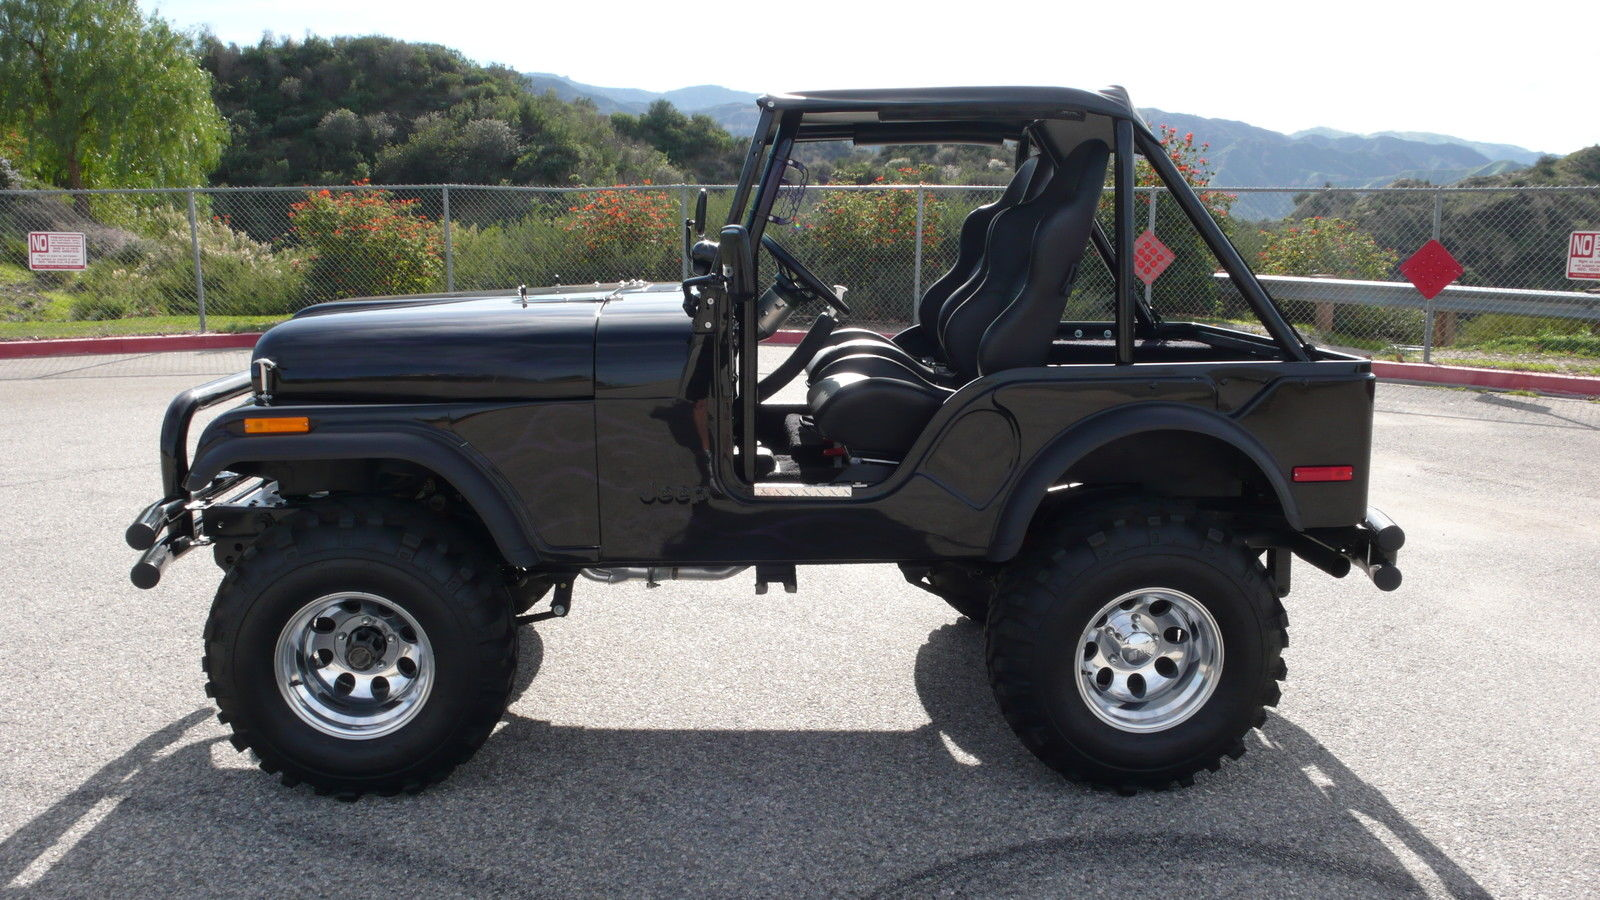 1974 jeep cj5   v8  jeep cj  4x4  off road  rock crawler